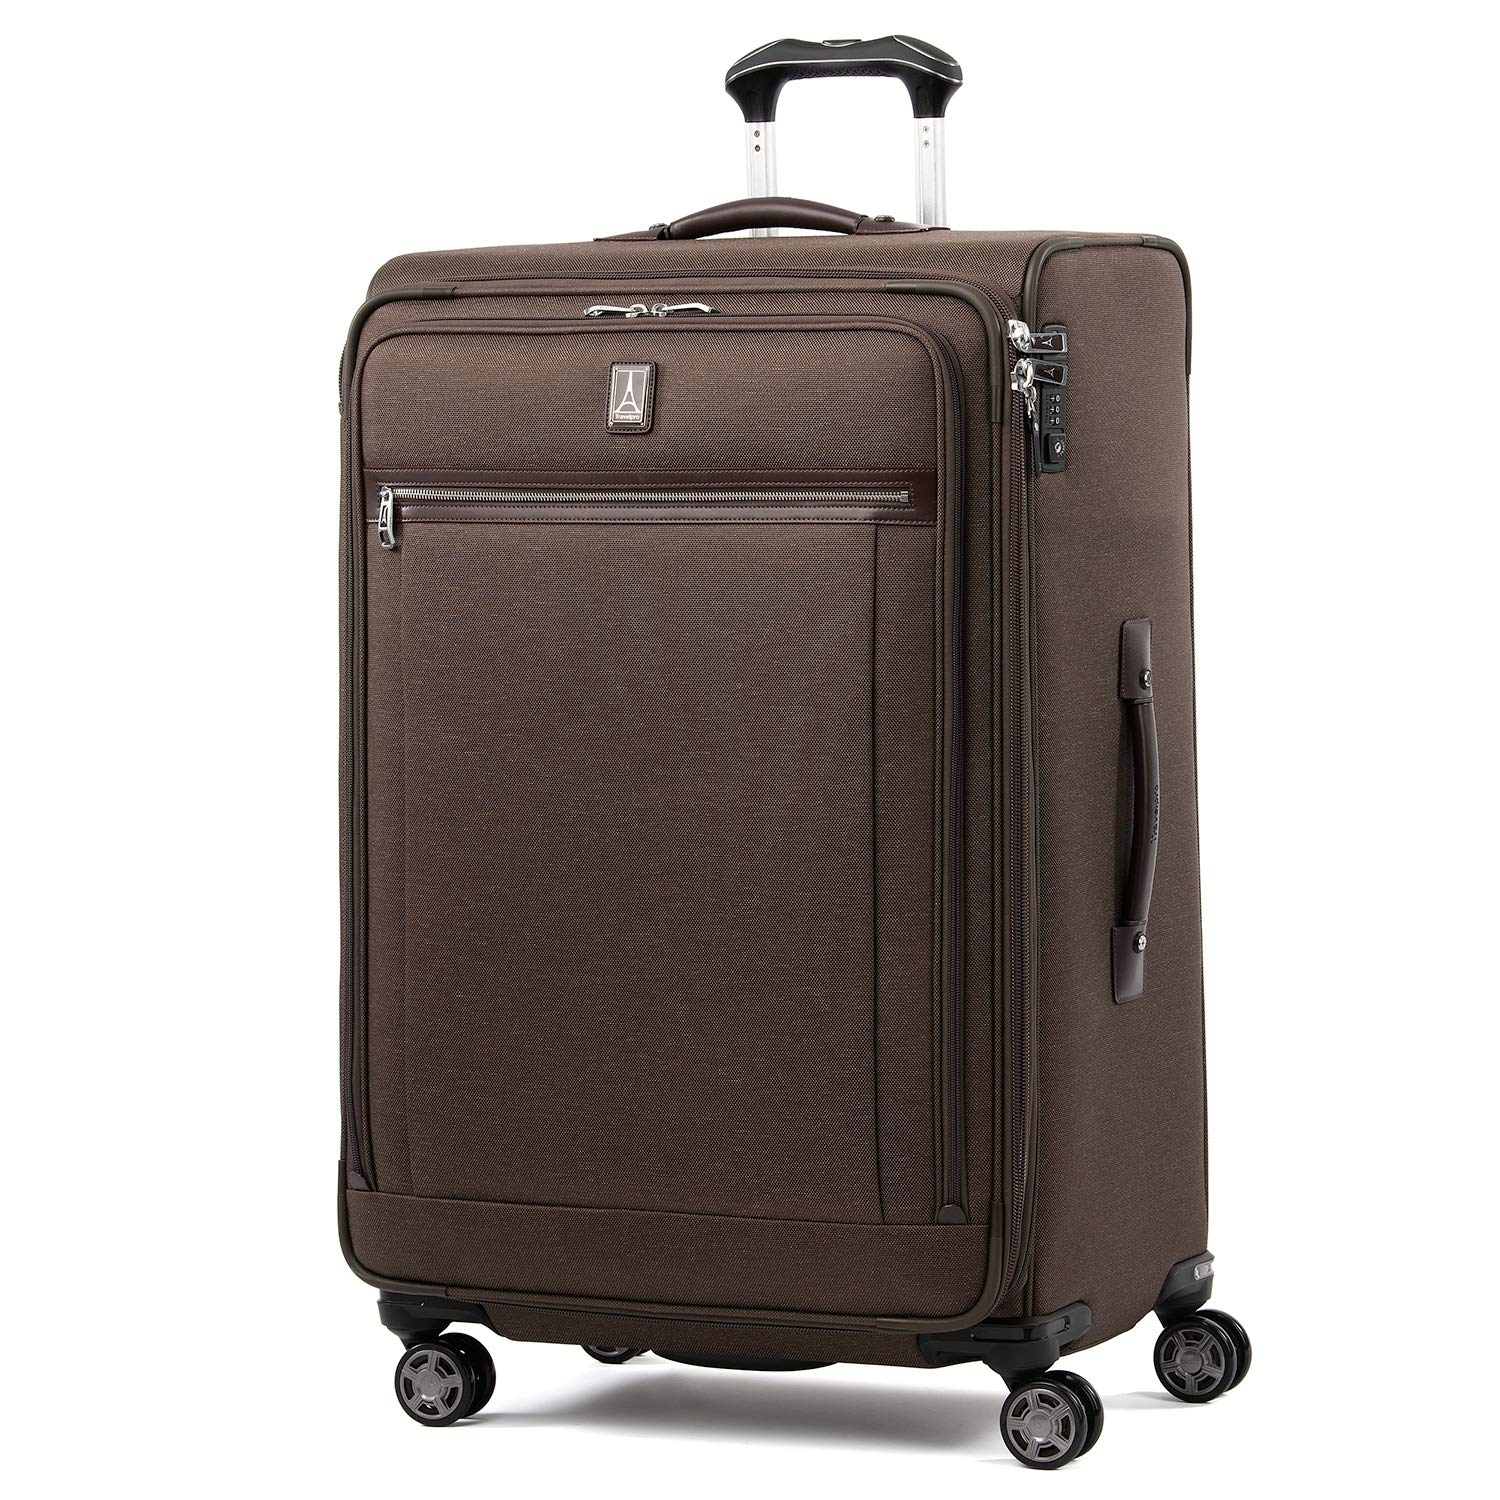 Travelpro Platinum Elite Expandable Spinner Suitcase, Rich Espresso